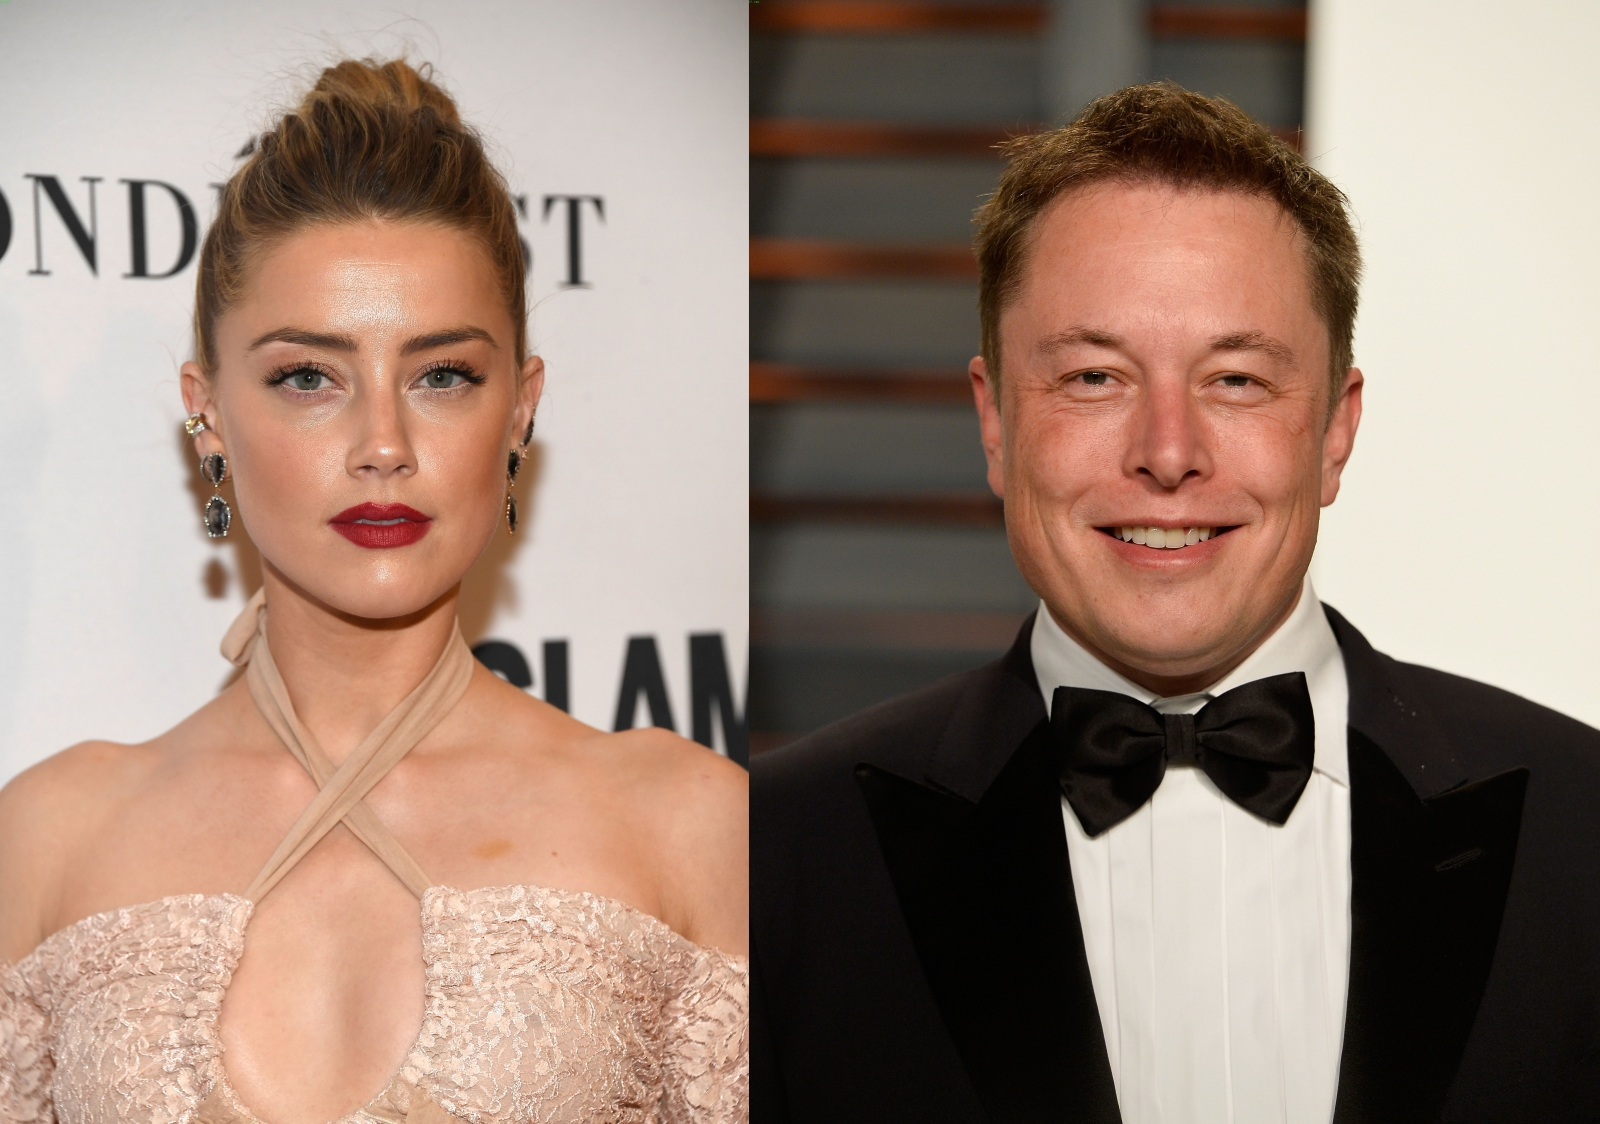 Elon Musk shares first look of Amber Heard in Aquaman and fans aren't thrilled about it